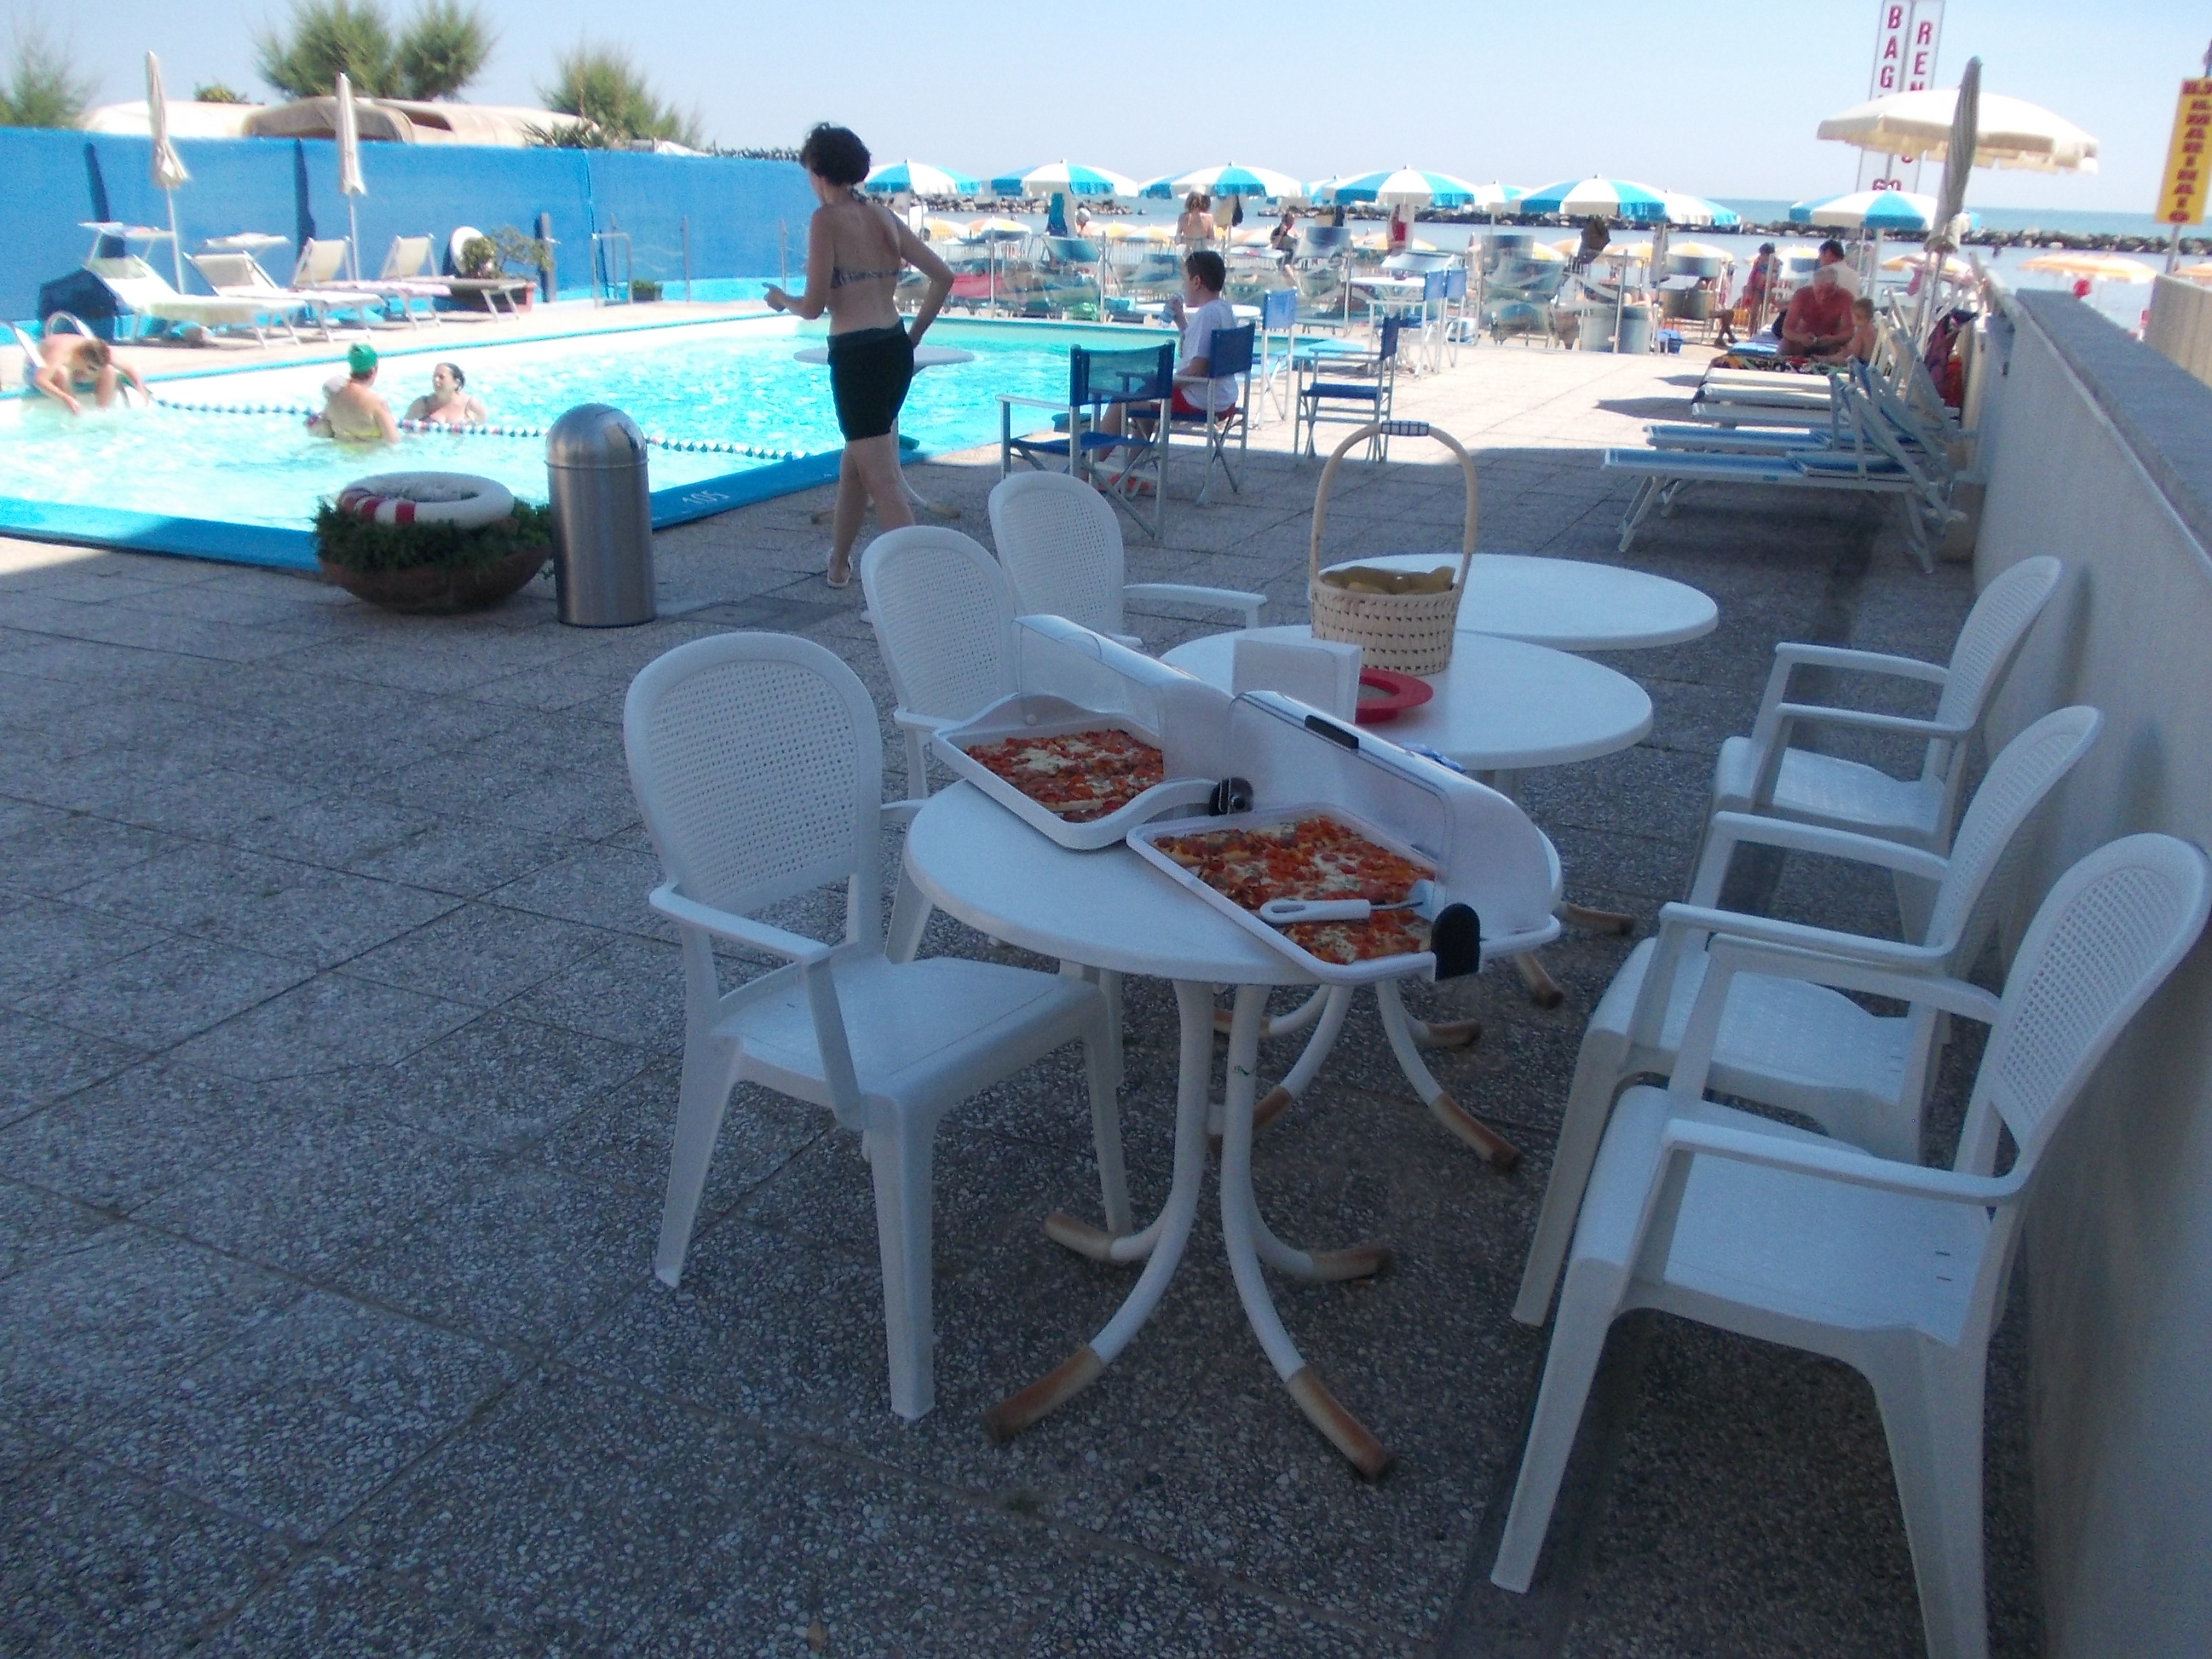 pizzette calde in piscina